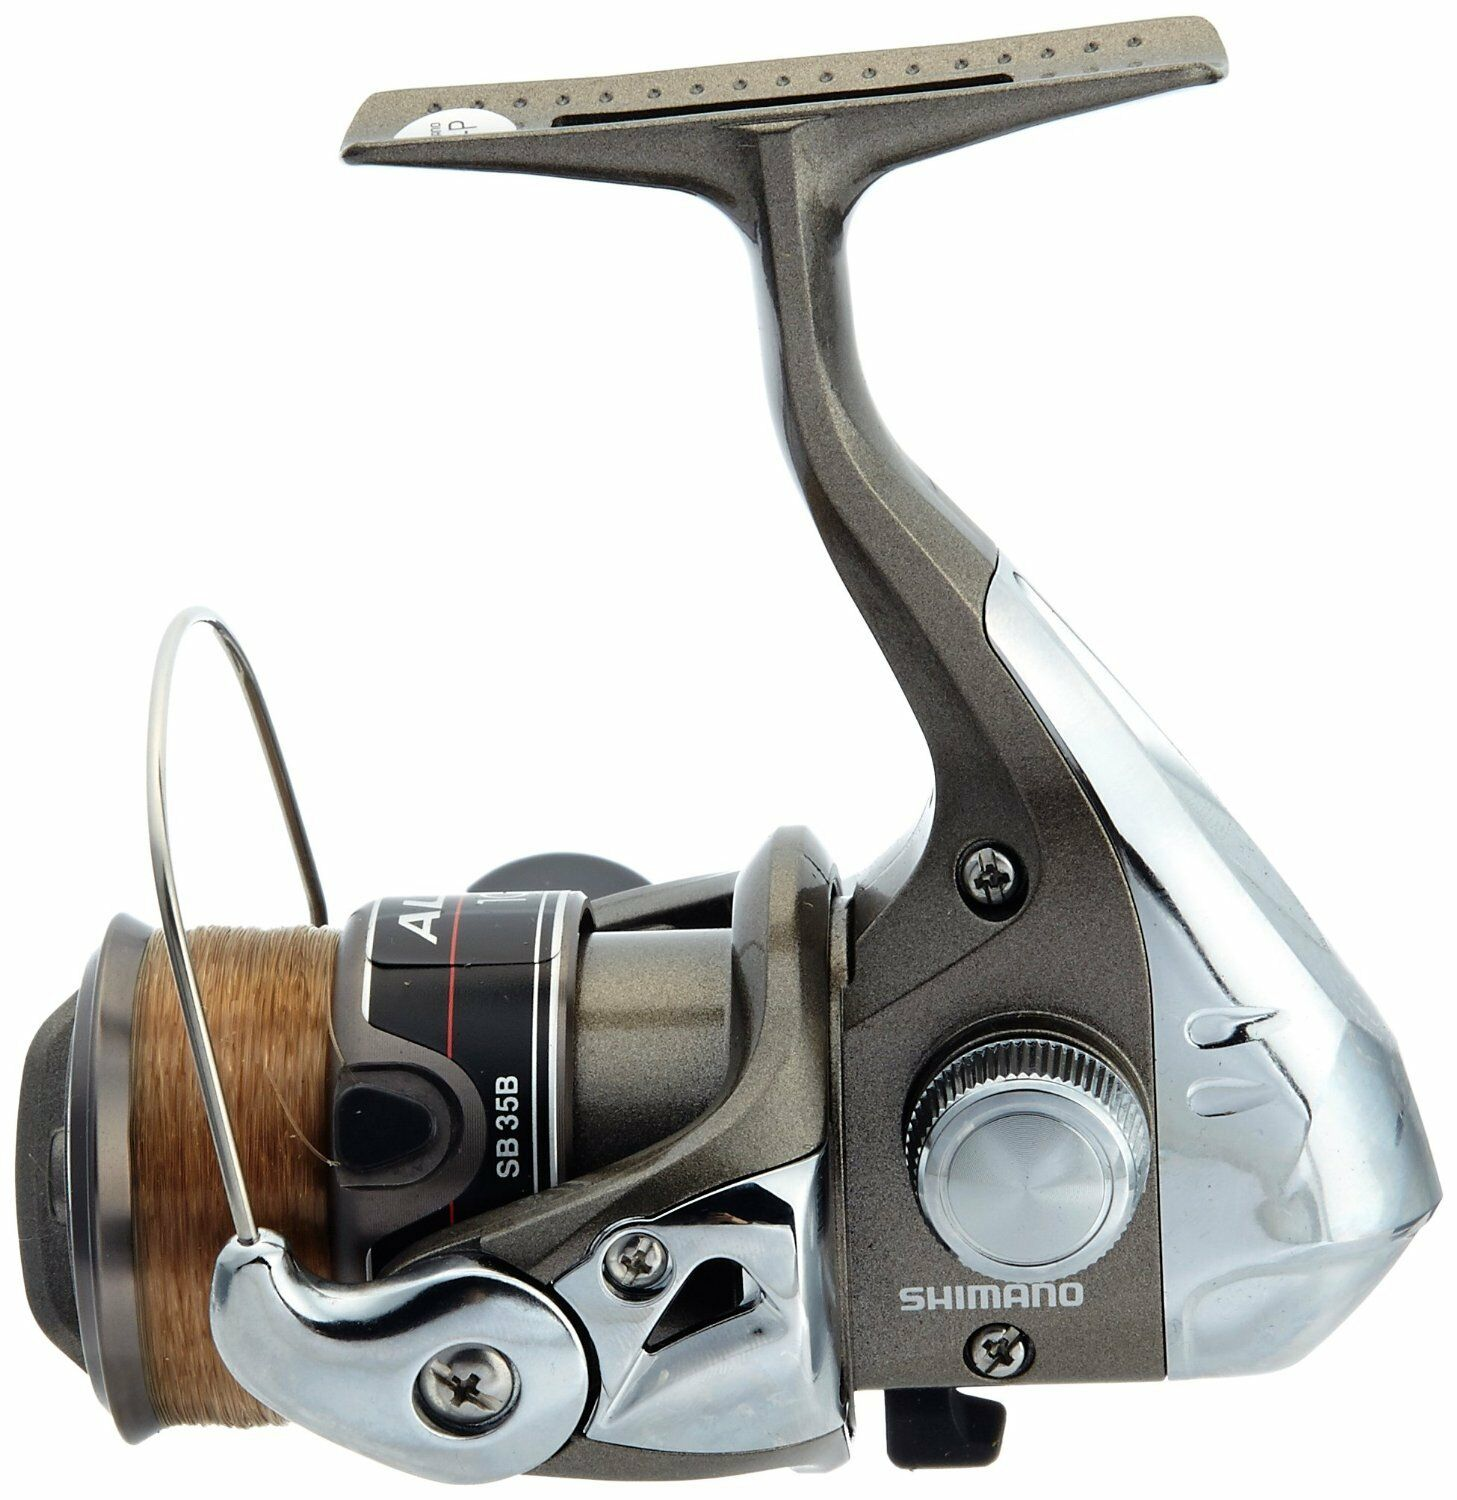 SHIMANO Aribio 1000 No. 2 with thread  From From  Japan 08a5f7